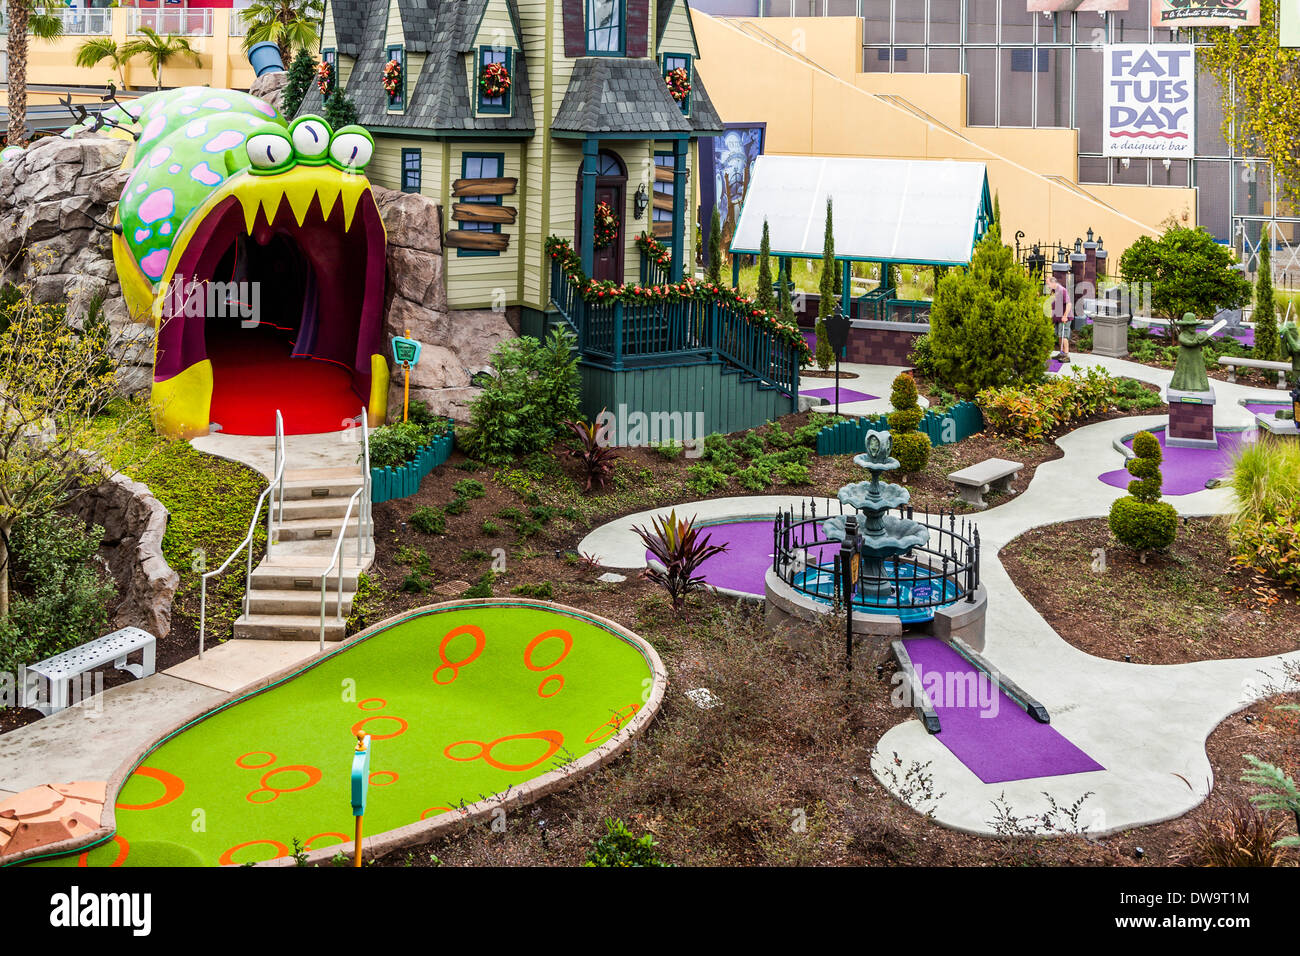 Putt Putt golf course at CityWalk in Universal Studios, Orlando, Florida - Stock Image